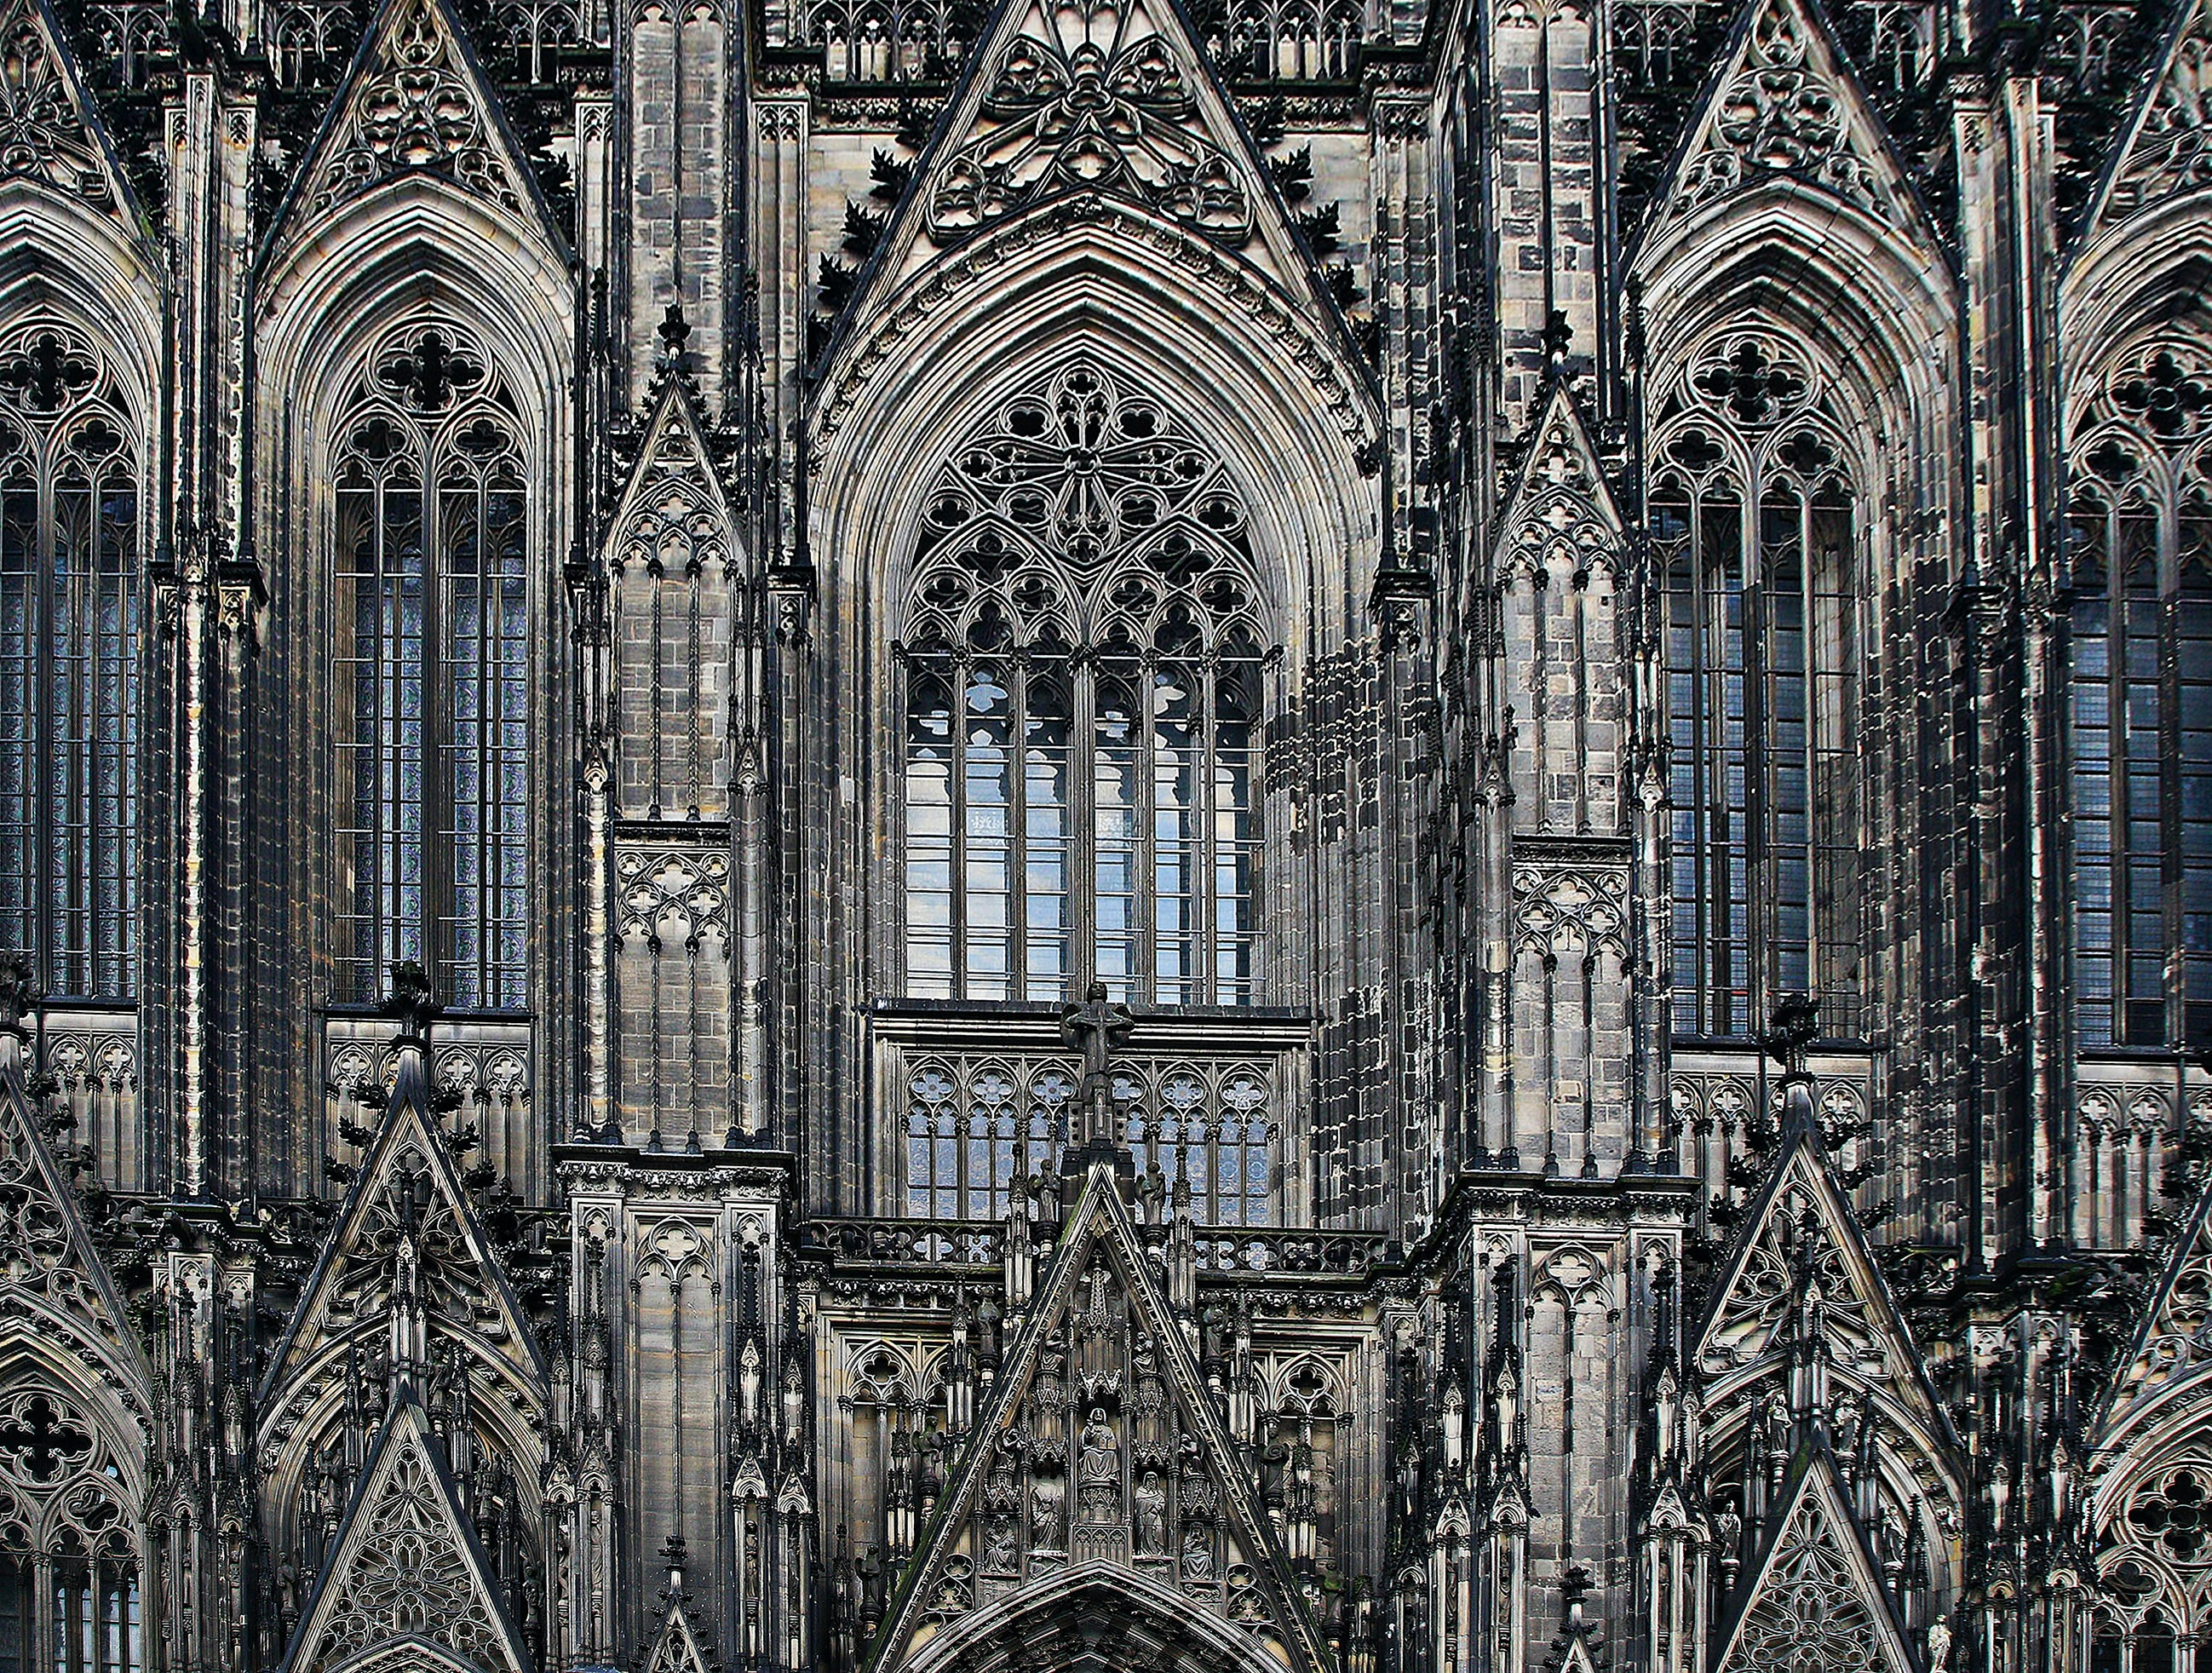 The detailed facade of an old cathedral.